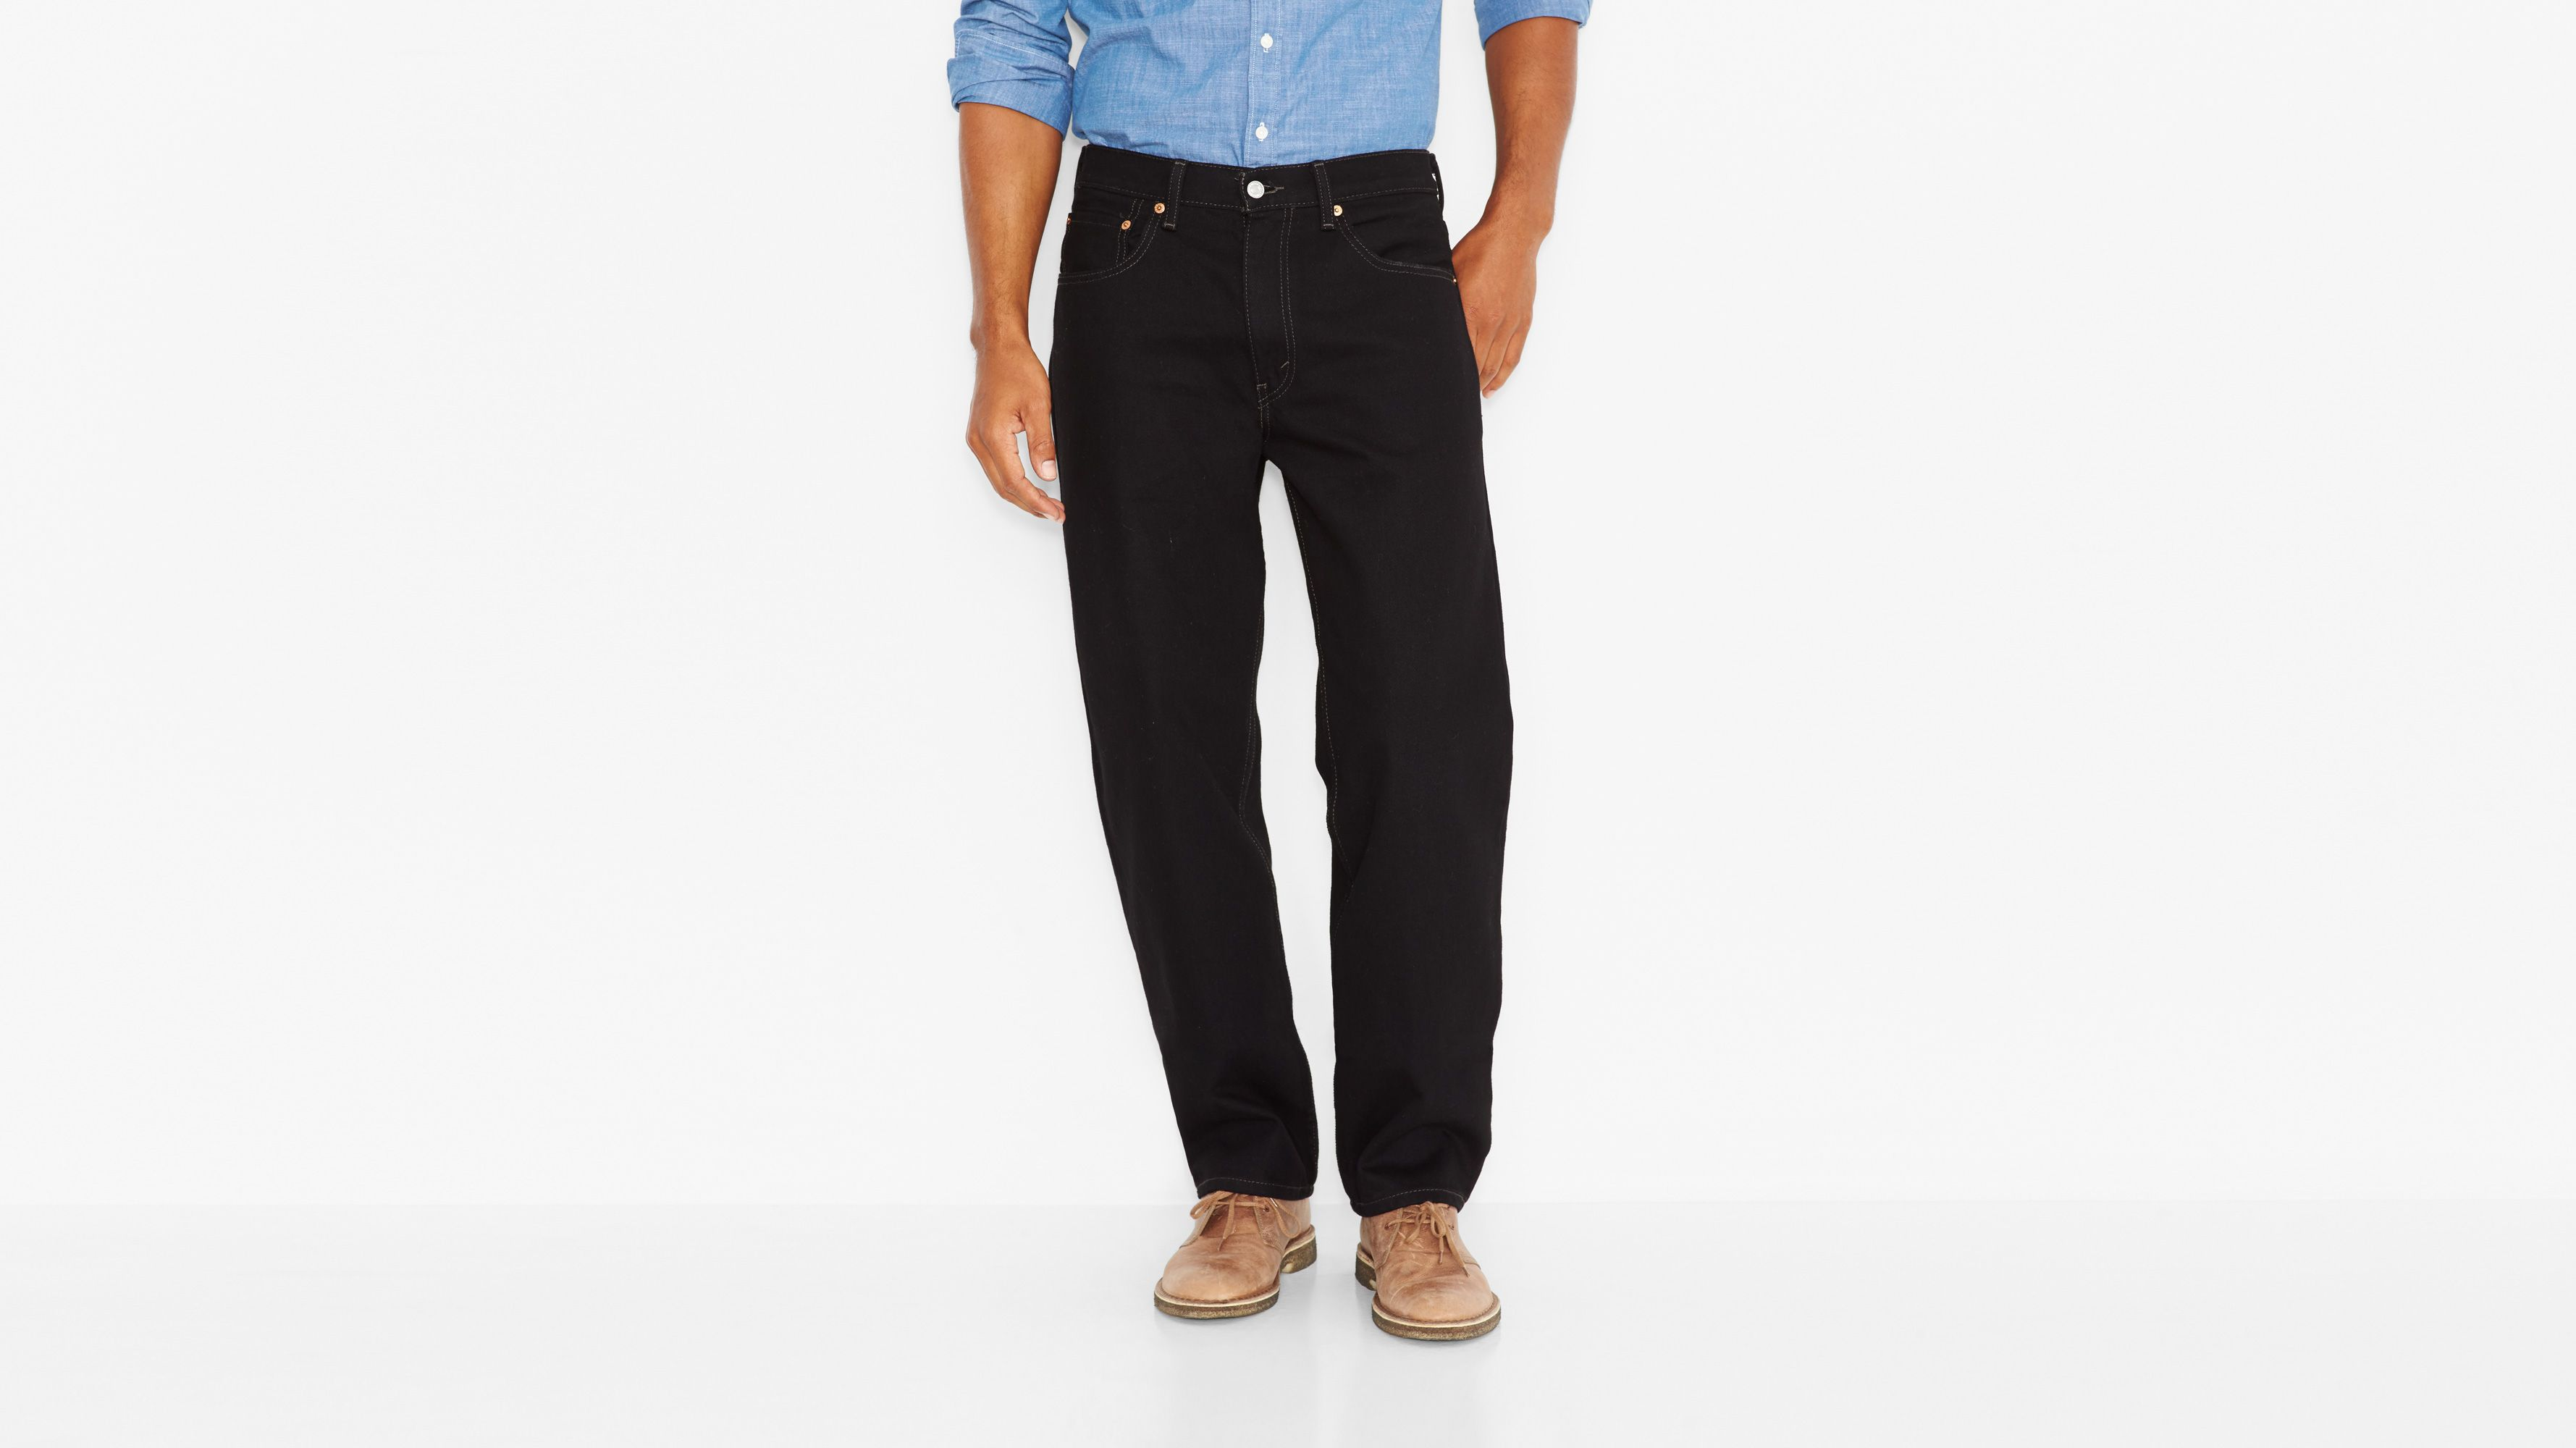 550™ Relaxed Fit Jeans (Big & Tall) - Black